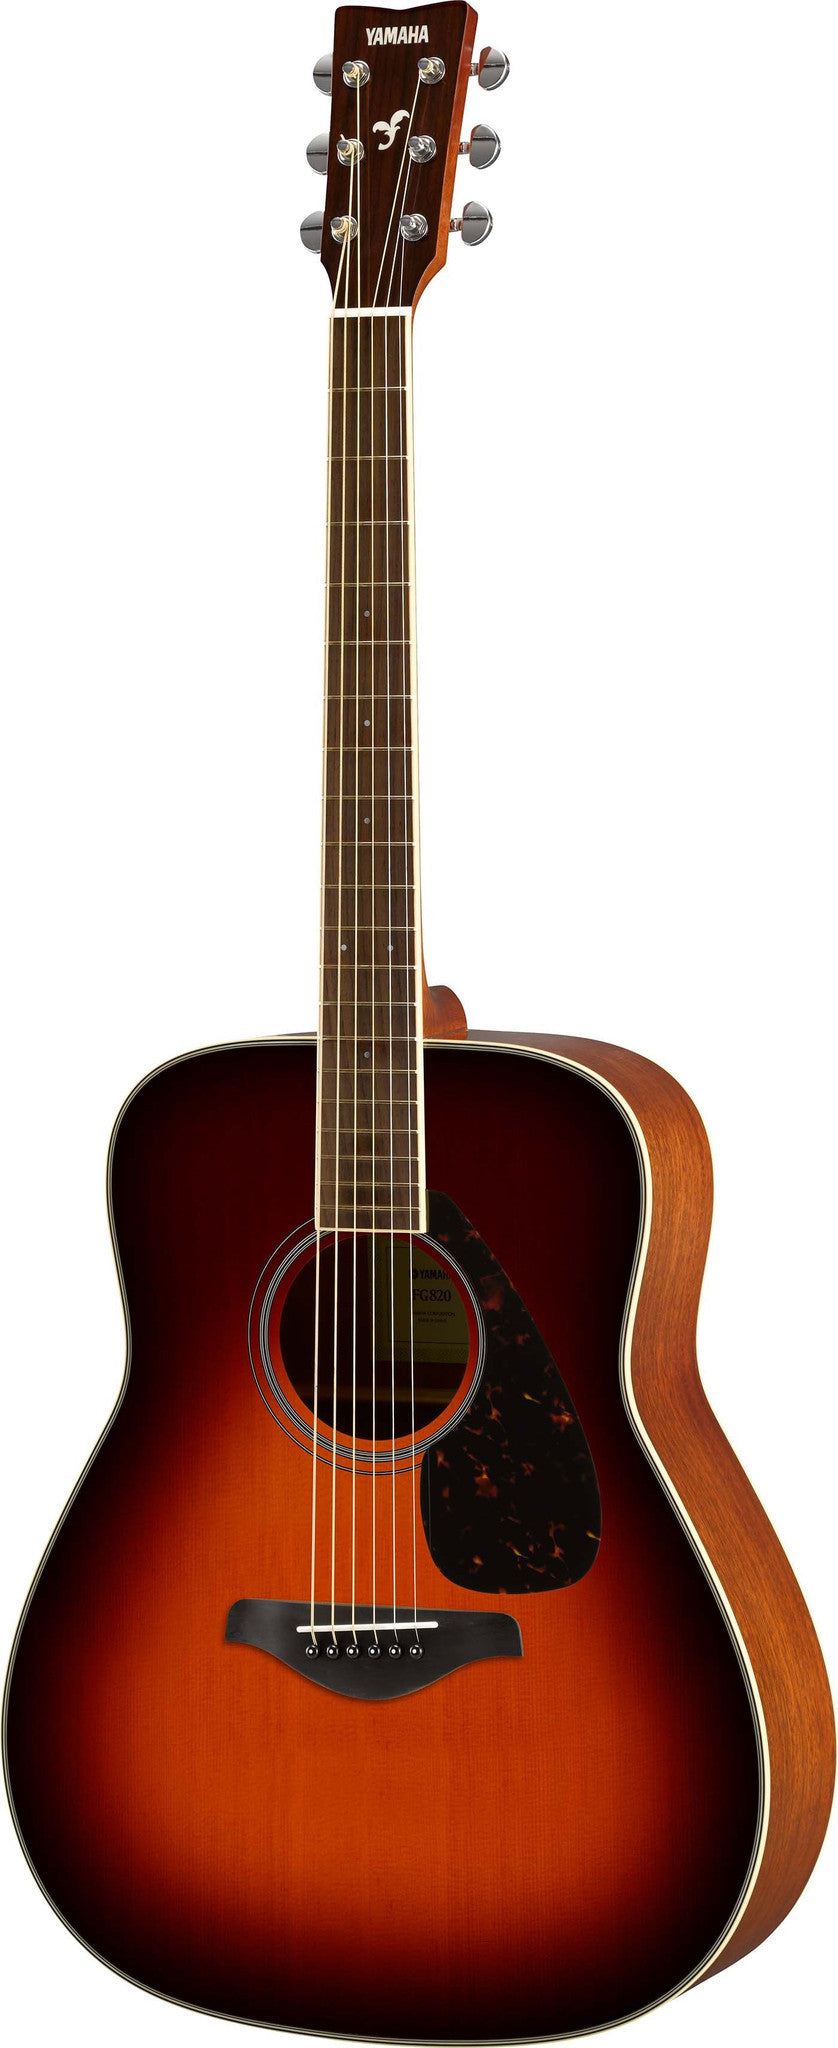 Yamaha FG820BS Dreadnought Acoustic Guitar